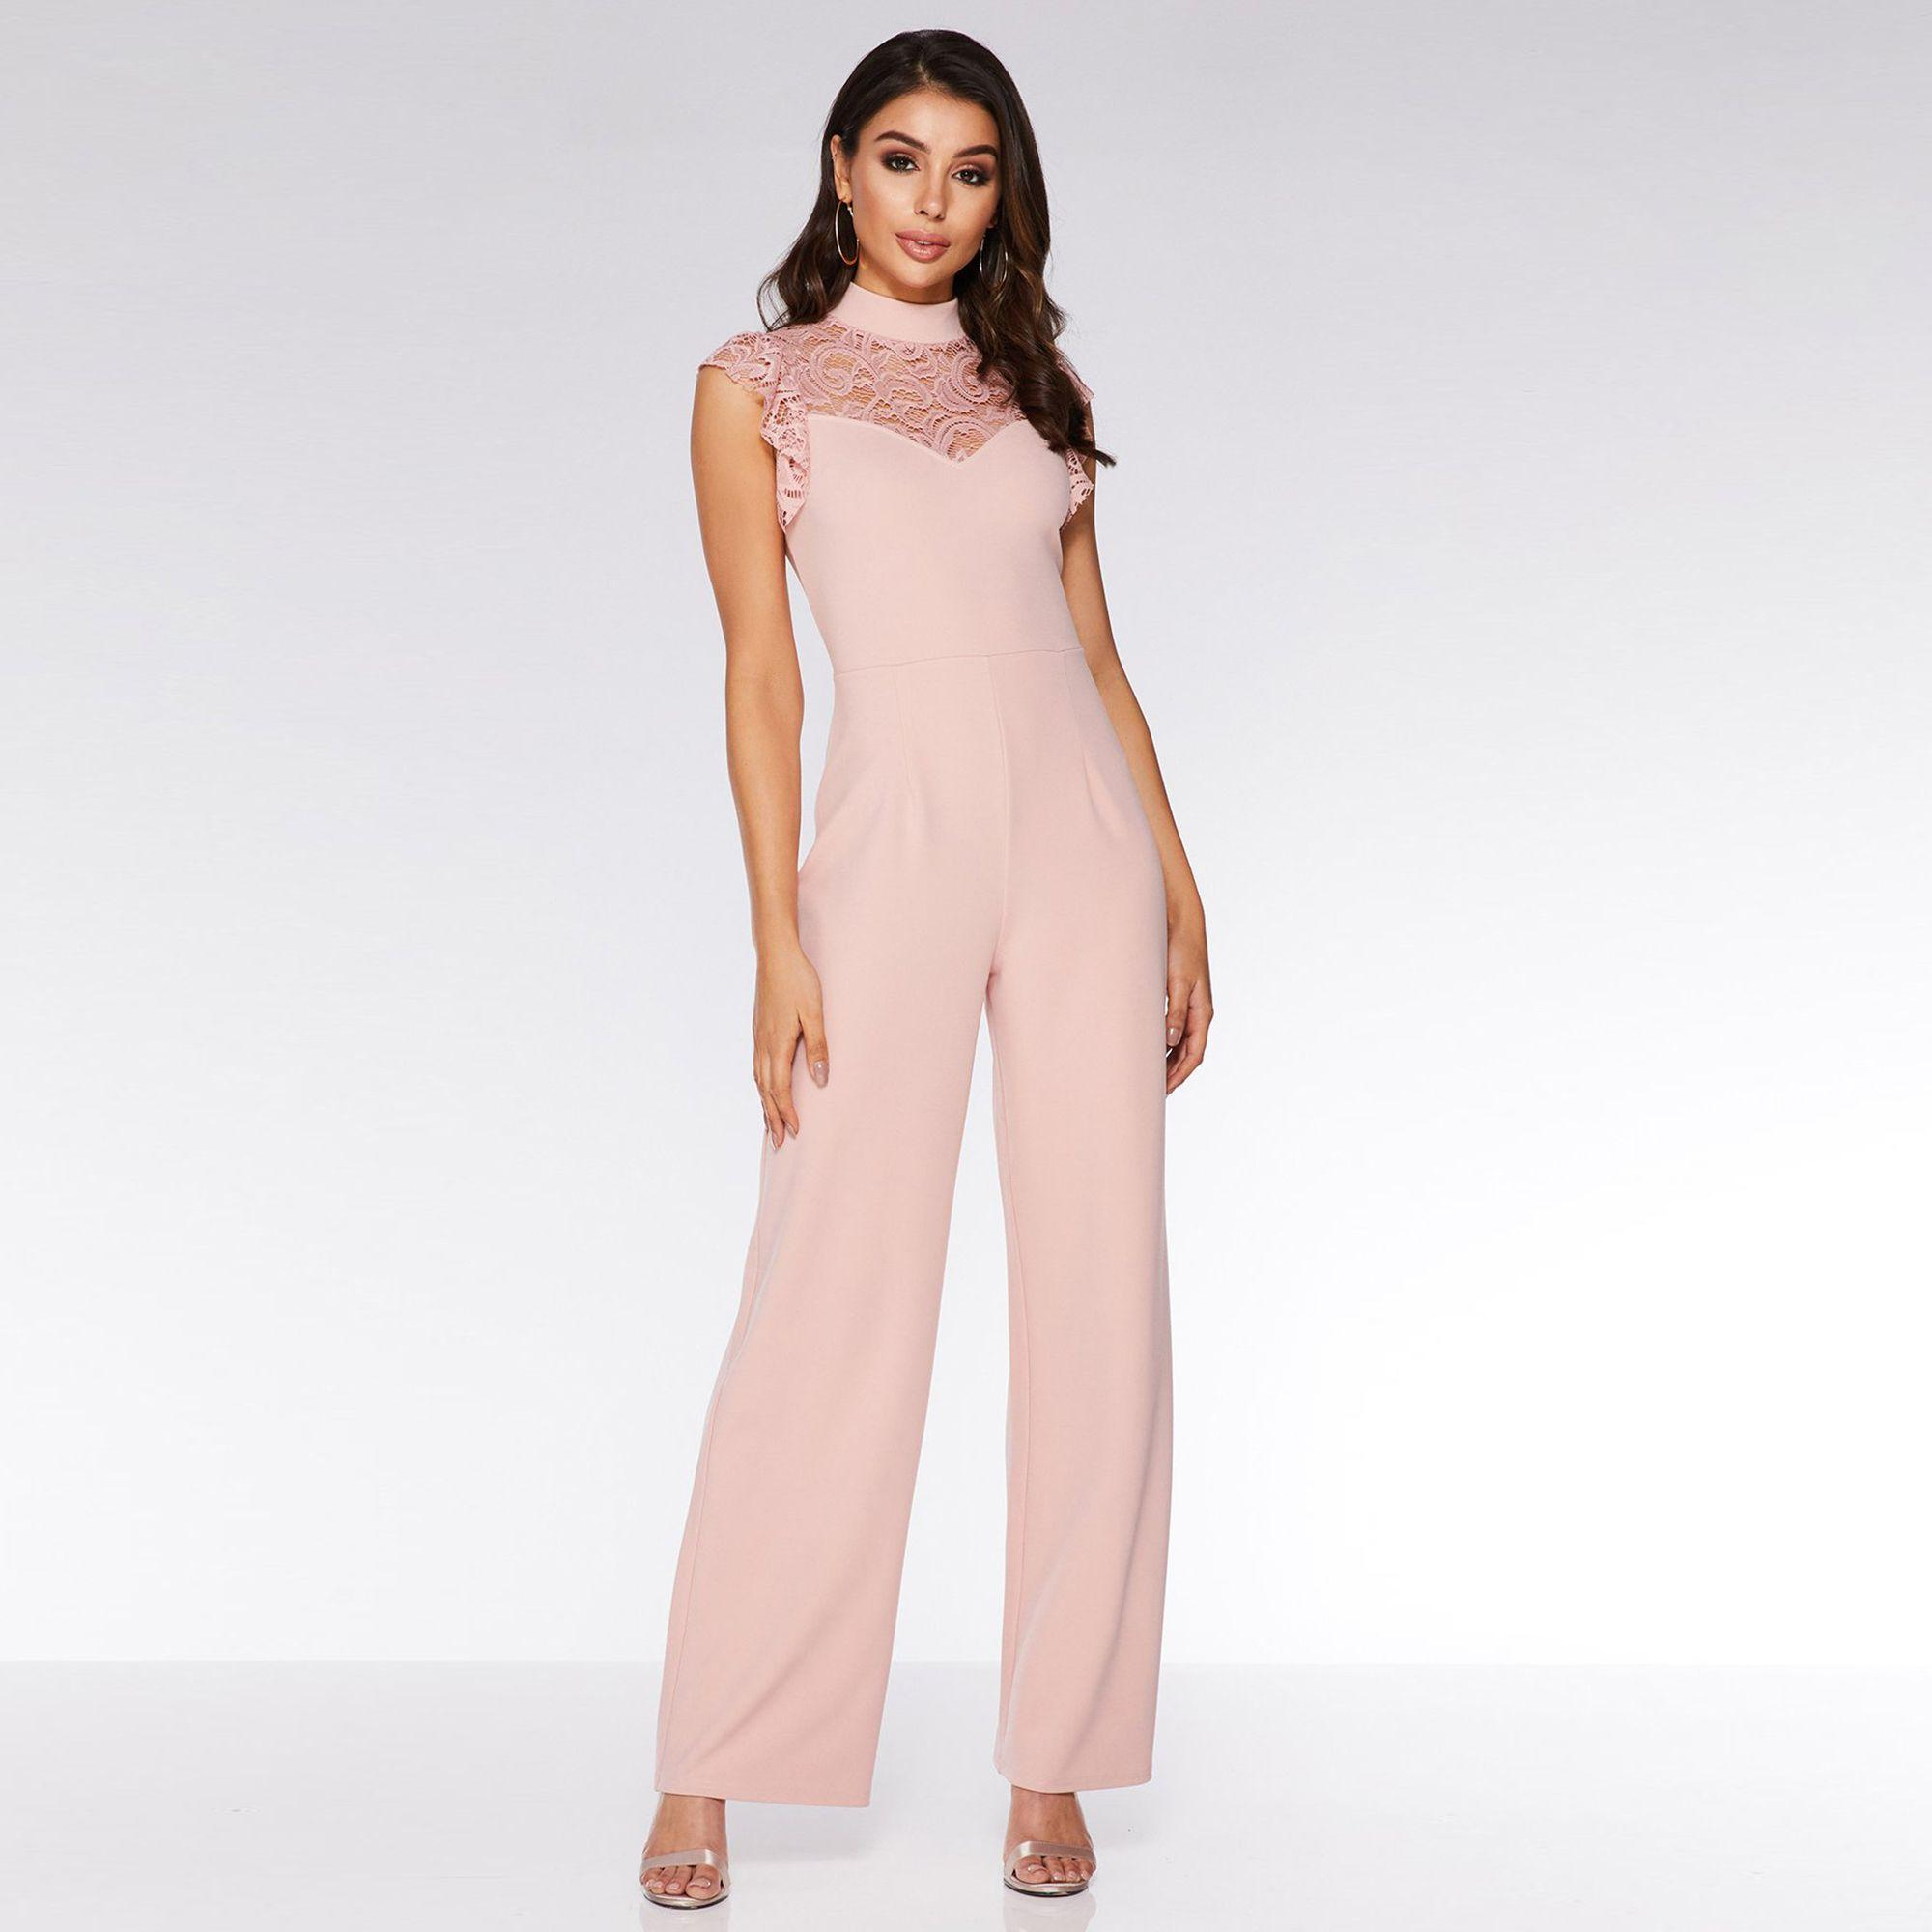 d537d197cc4 Quiz Dusky Pink Lace Frill High Neck Palazzo Jumpsuit in Pink - Lyst